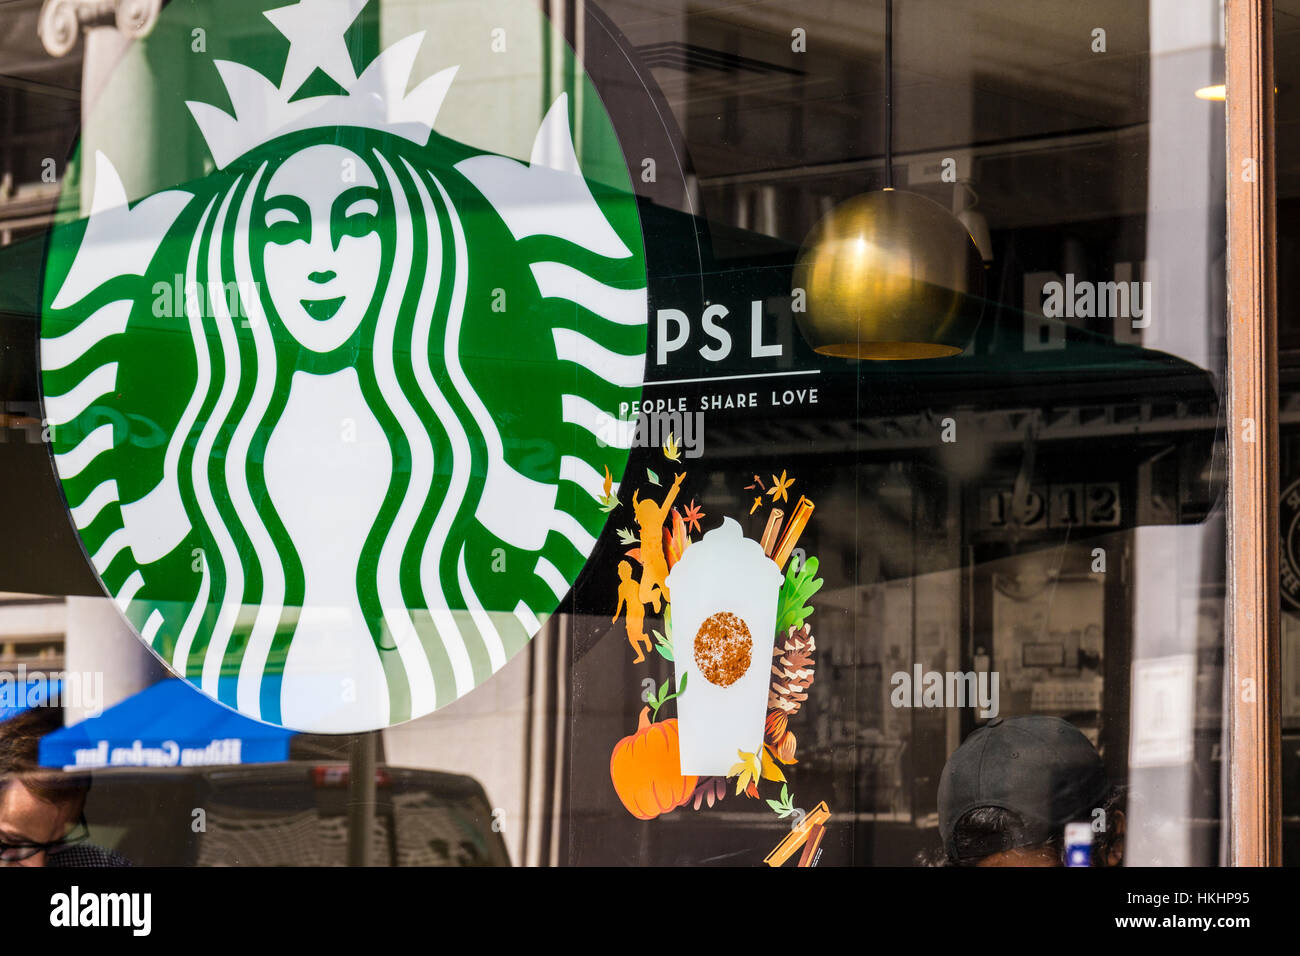 Indianapolis - Circa September 2016: Starbucks Retail Coffee Store. Starbucks is Serving Pumpkin Spice Lattes VI - Stock Image